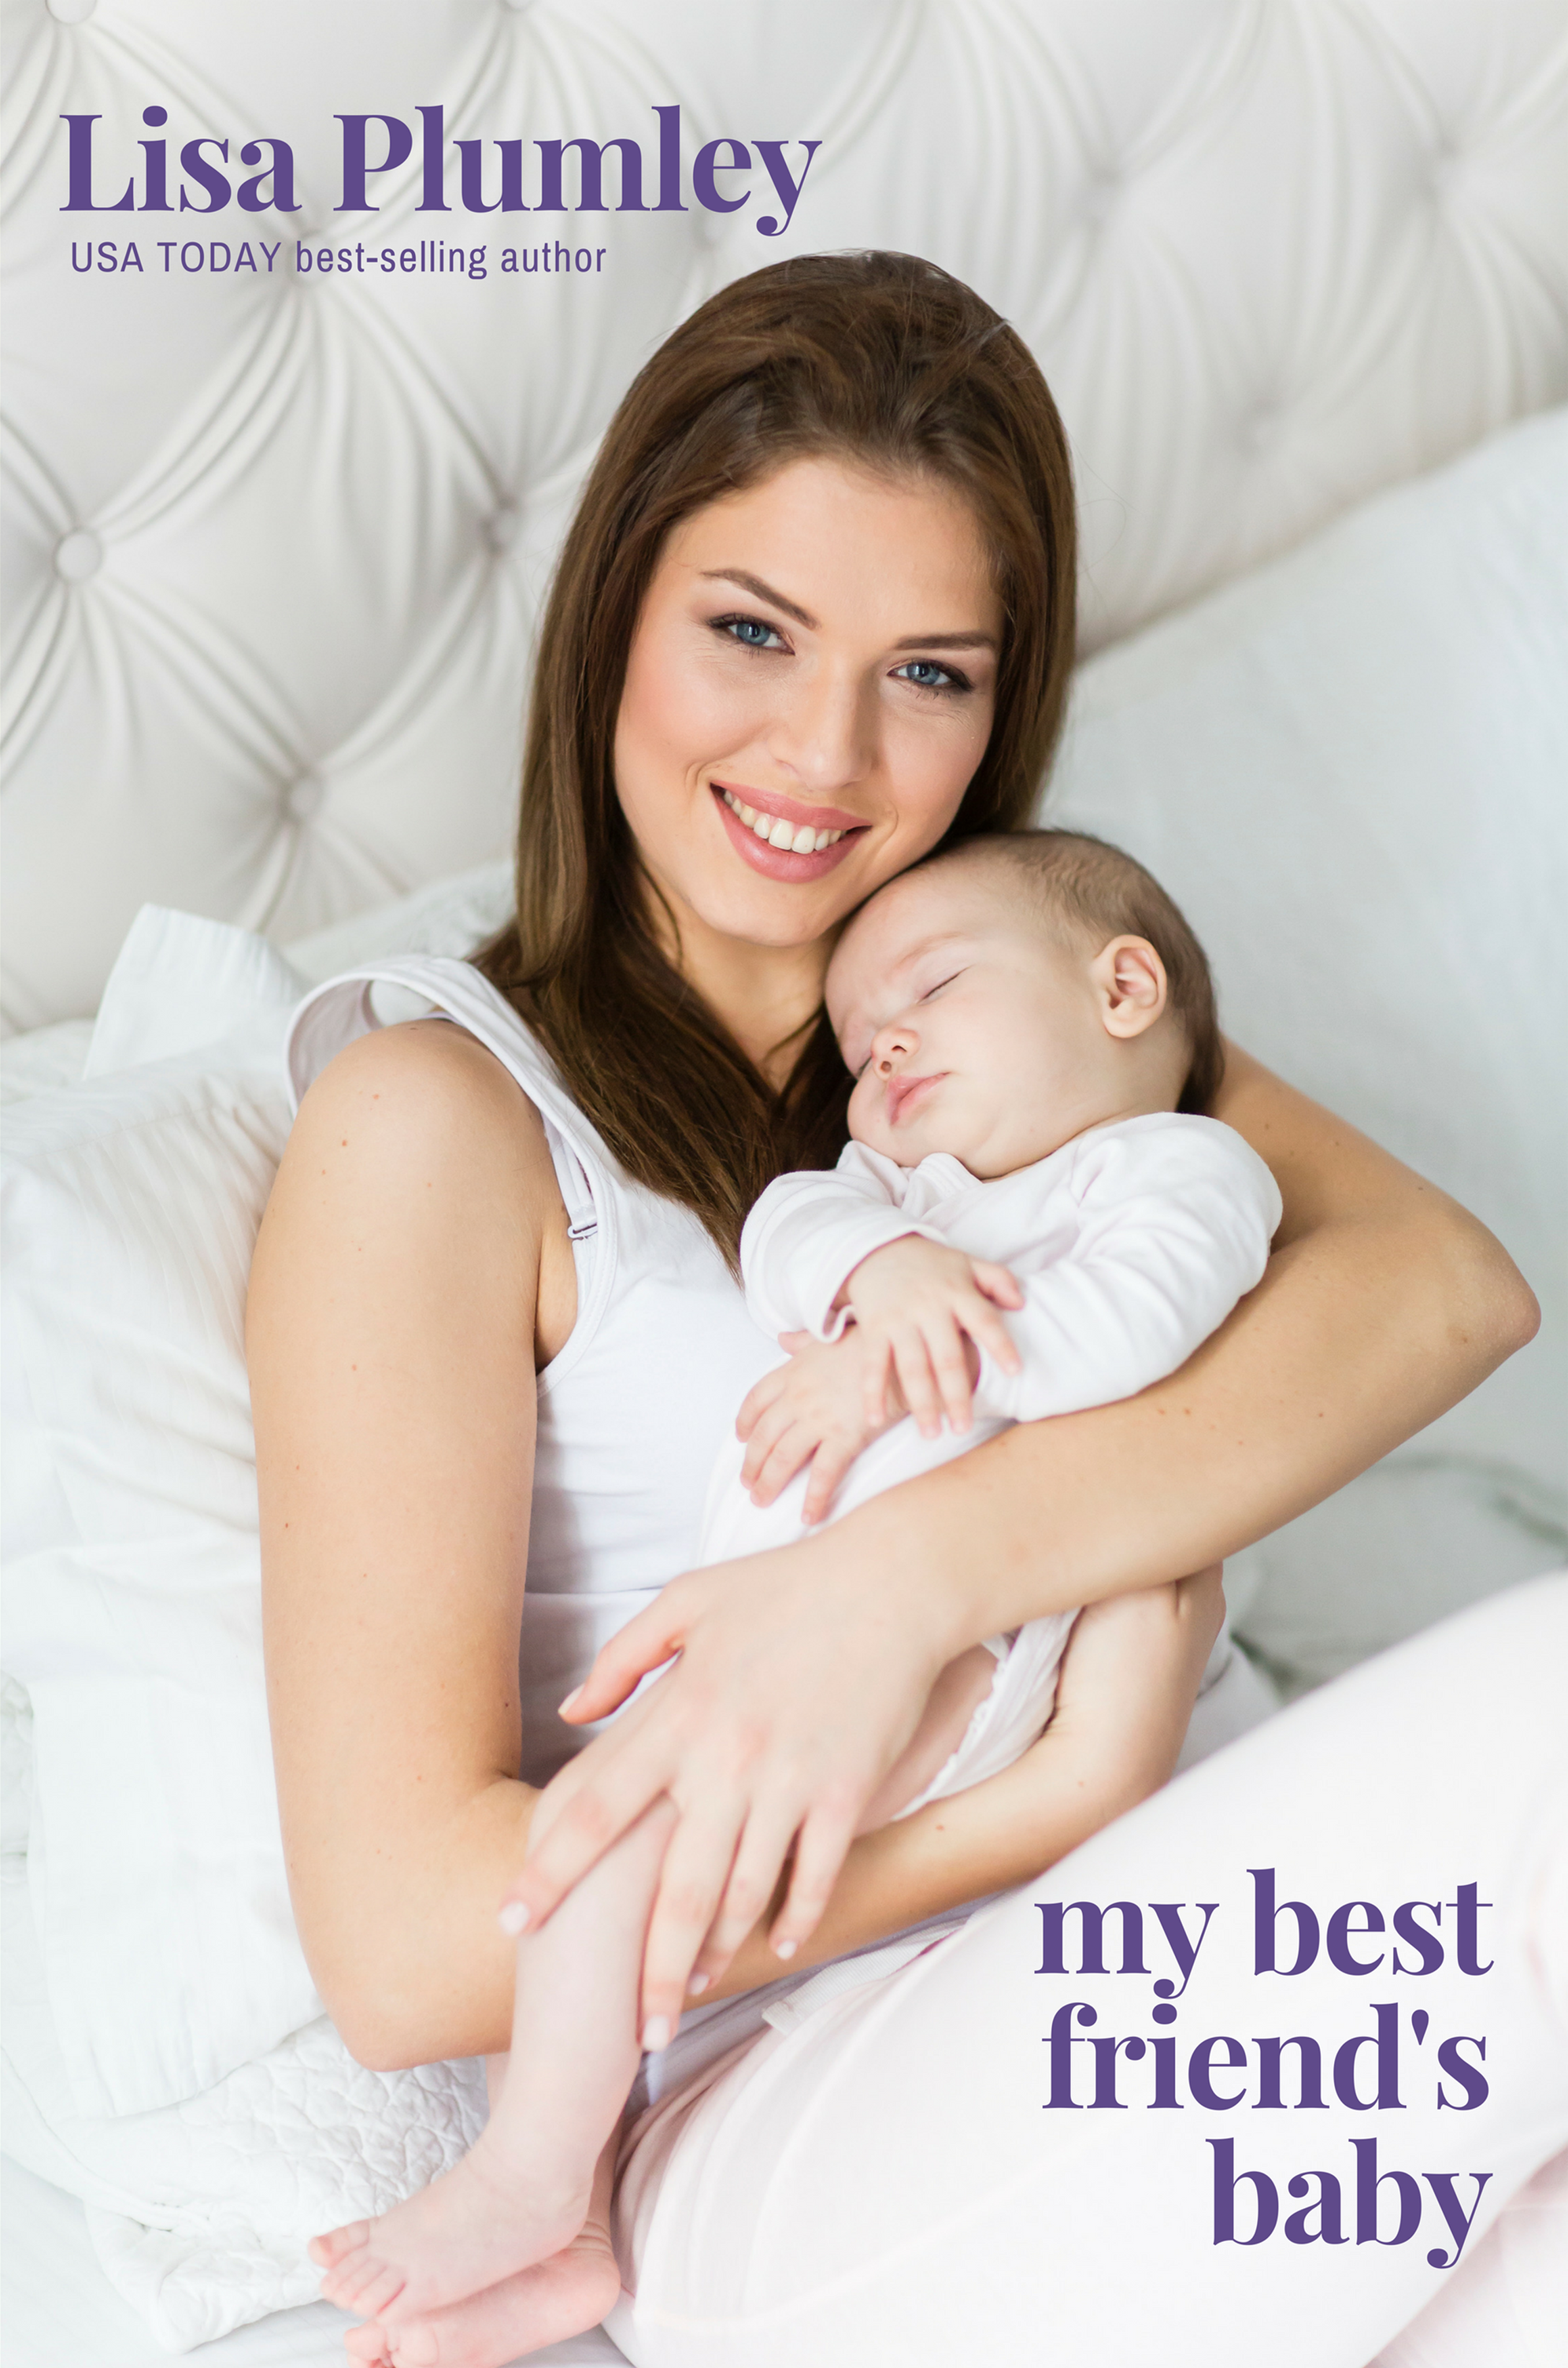 My Best Friend's Baby by Lisa Plumley (paperback edition)